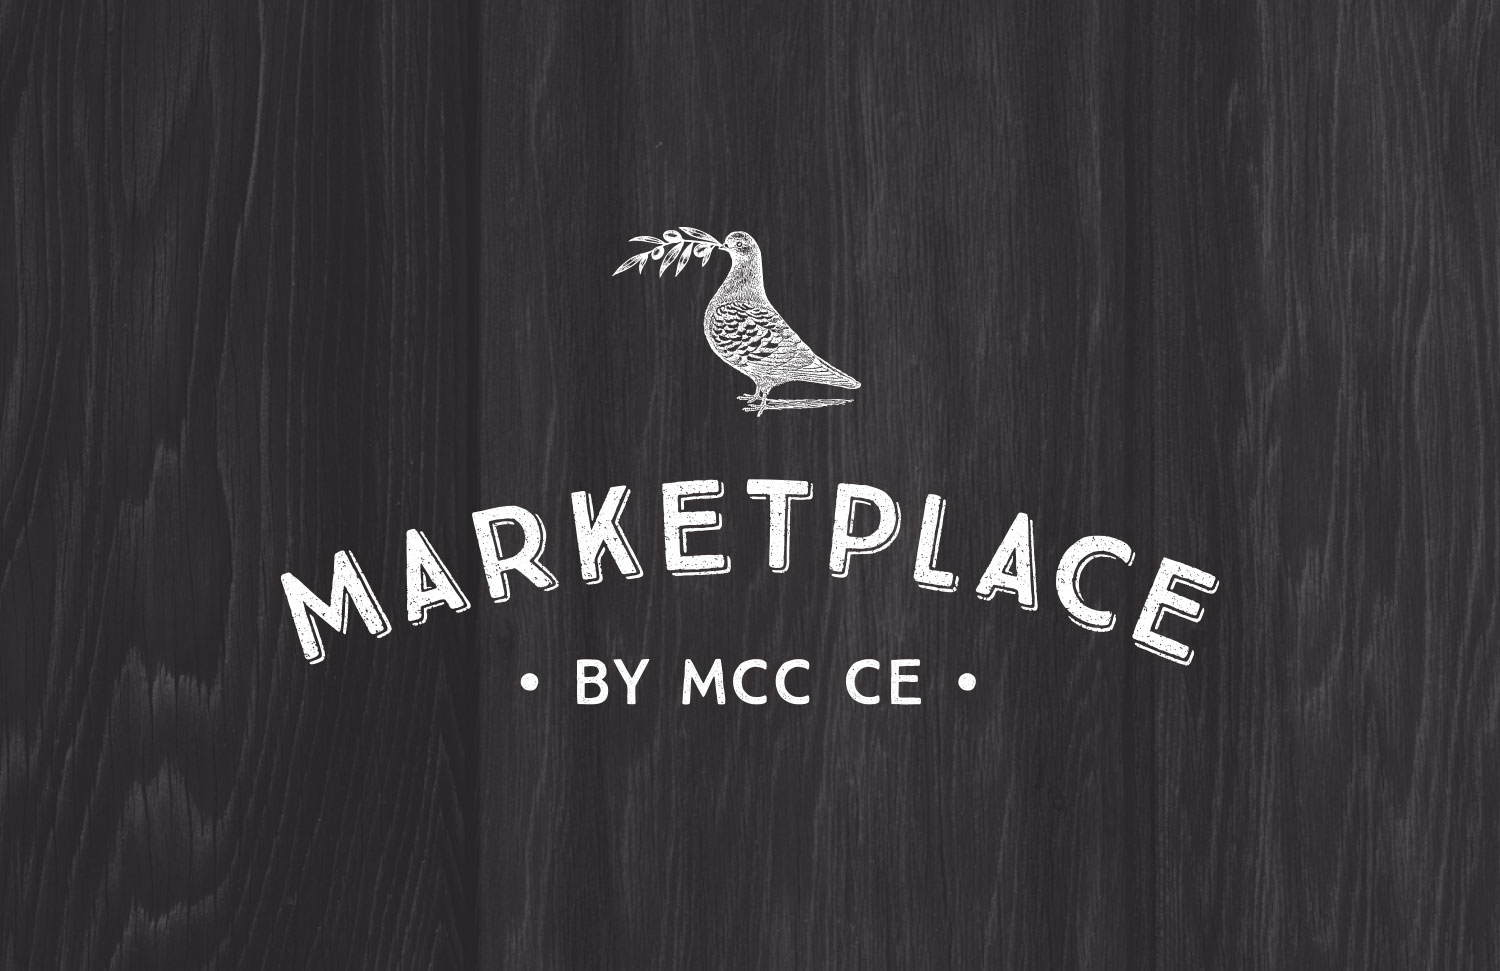 Marketplace-by-MCC-CE_logo_white.jpg